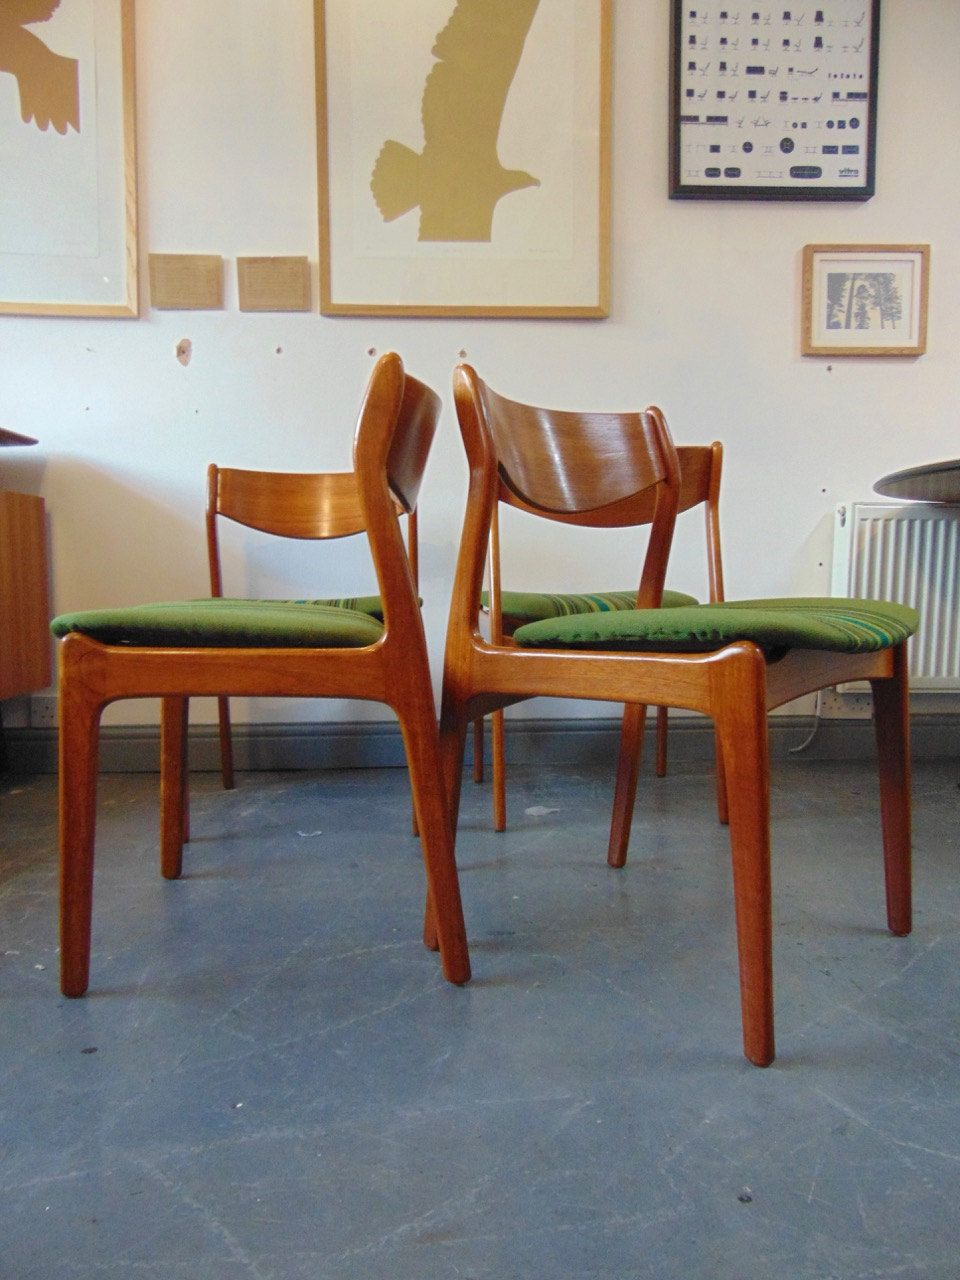 Vintage Danish Teak Seat Of Four Dining Chairs By PEJorgensen For Farso Stolefabrik 1960s